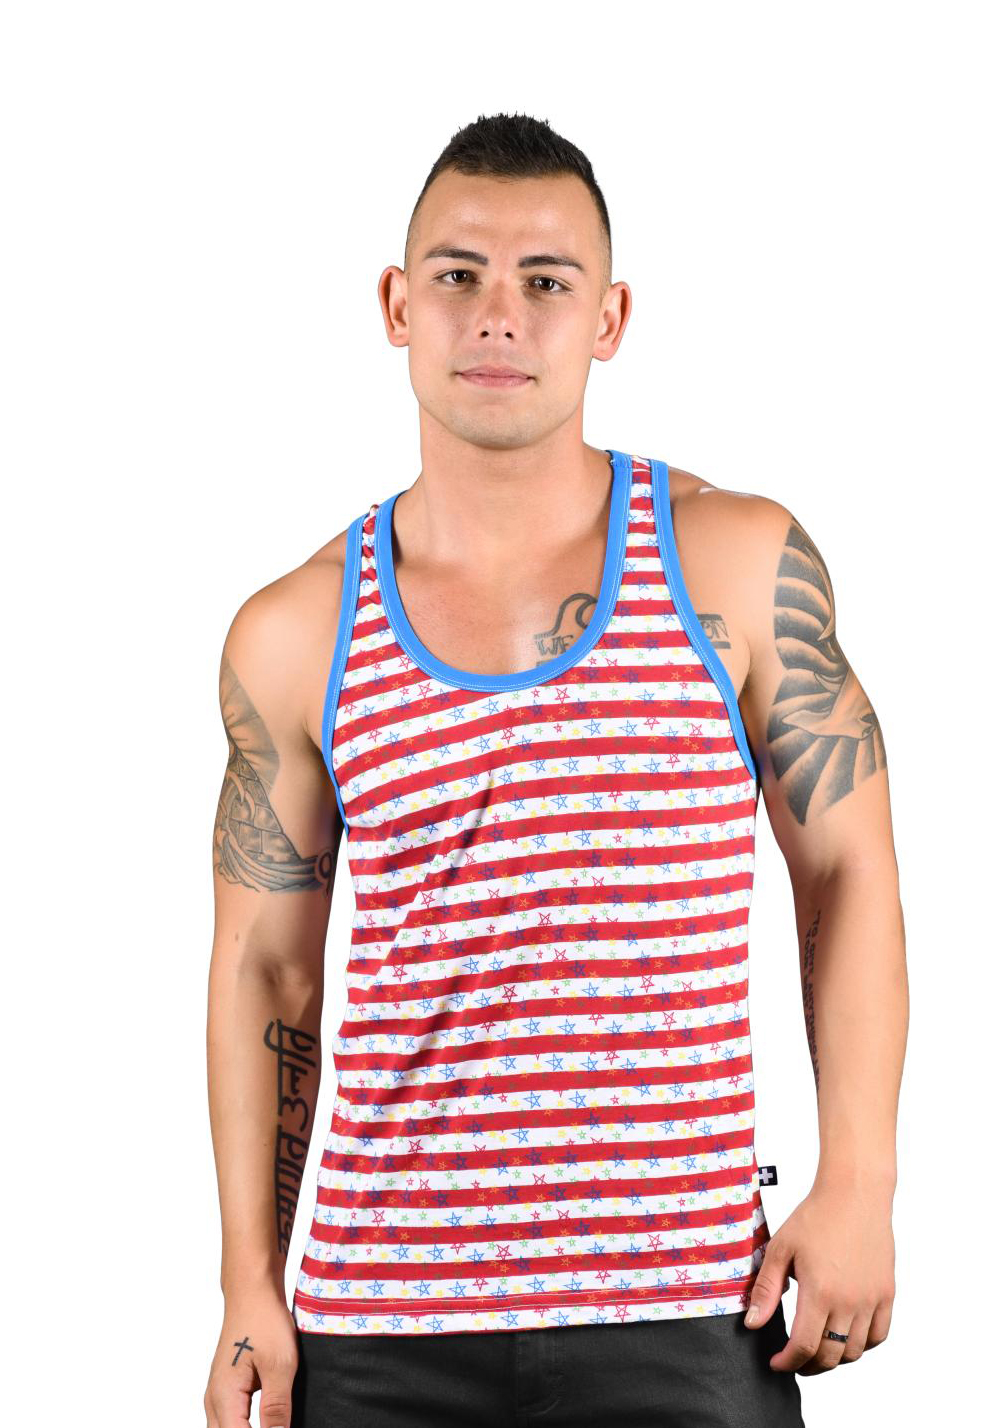 Andrew Christian Stars & Stripes Racer Back Tank